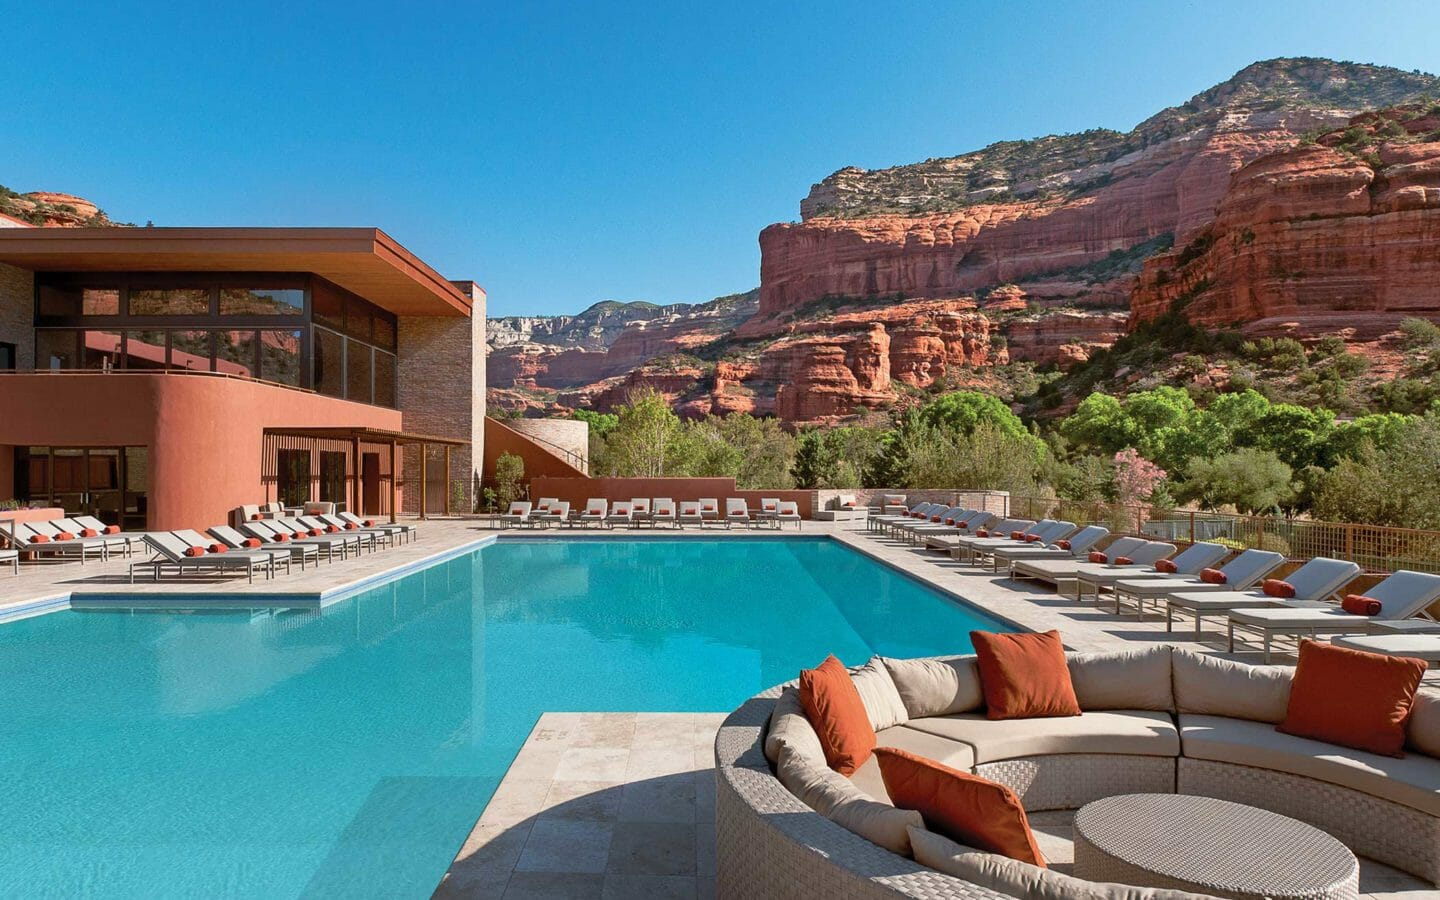 outdoor resort pool with lounger chairs